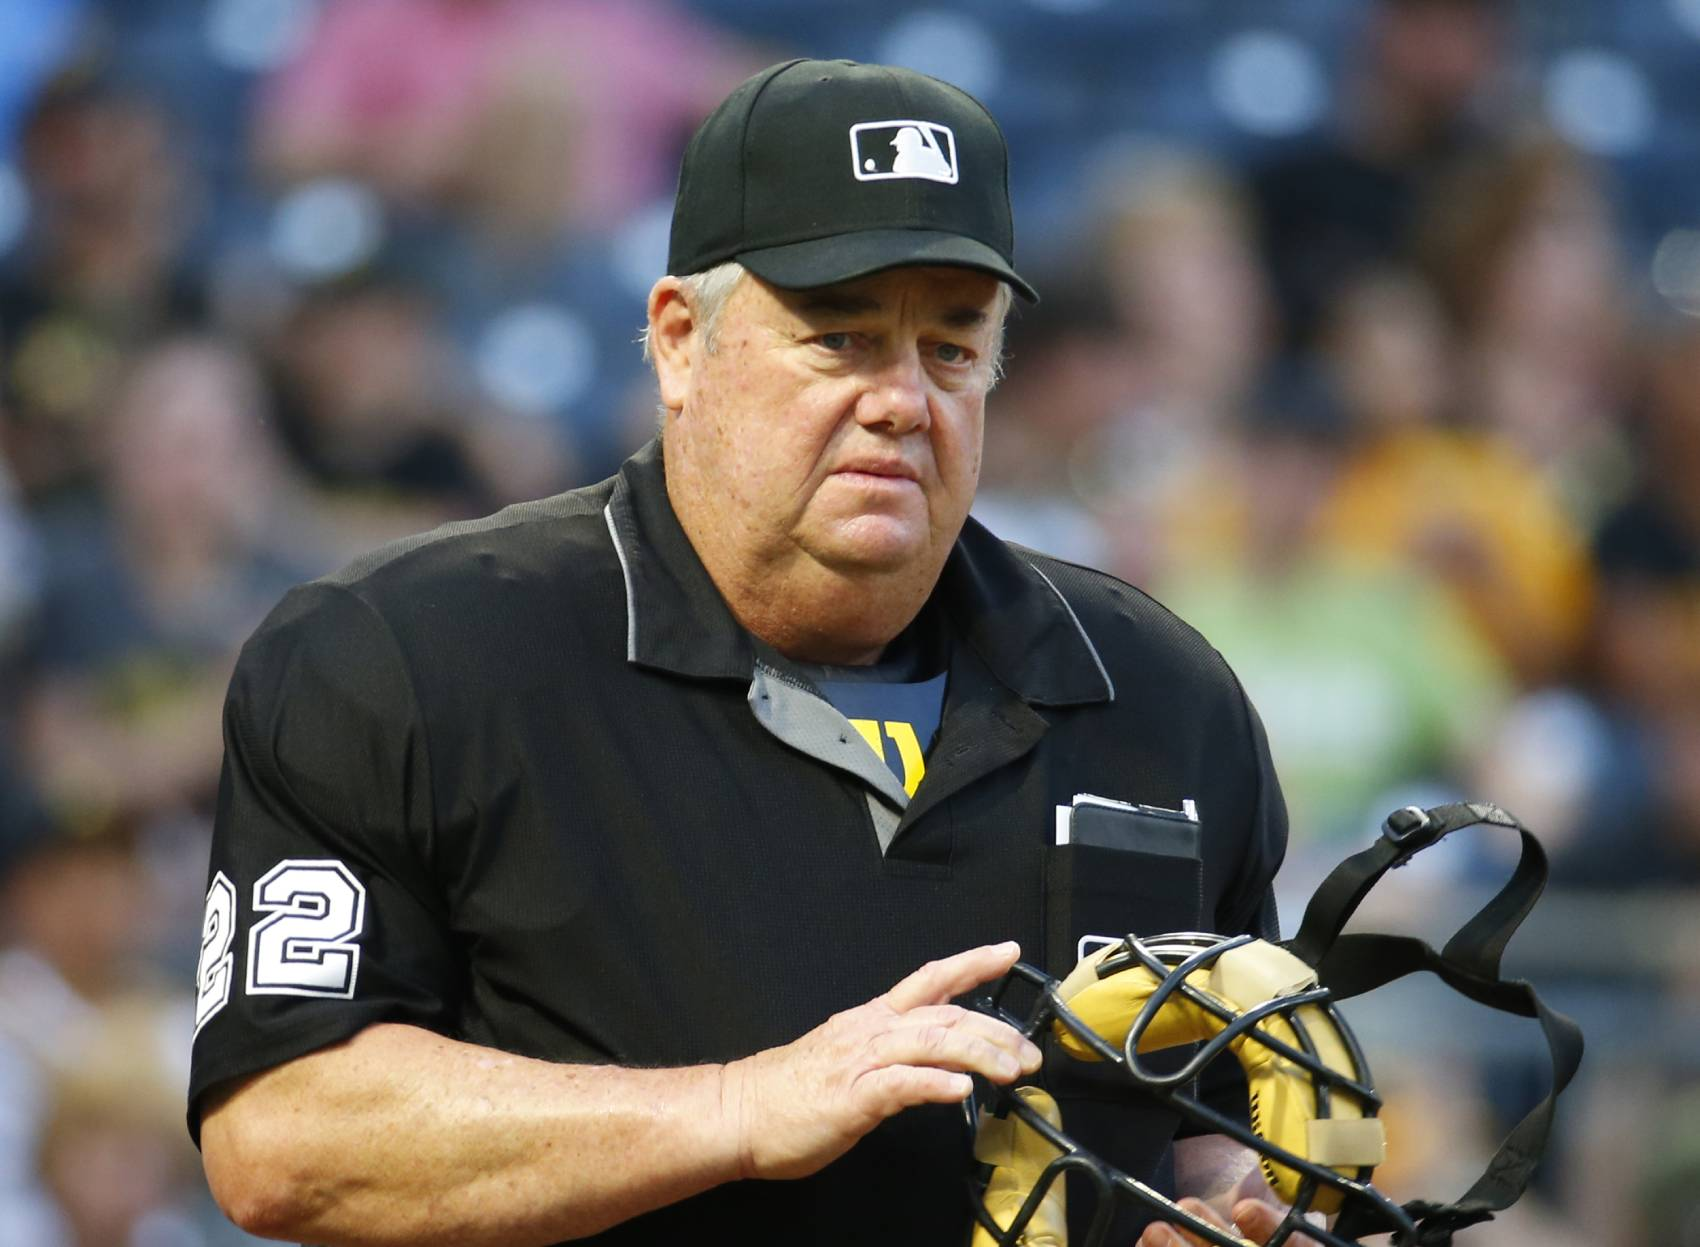 Veteran MLB umpire Joe West intends to work this season despite the COVID-19 risks.